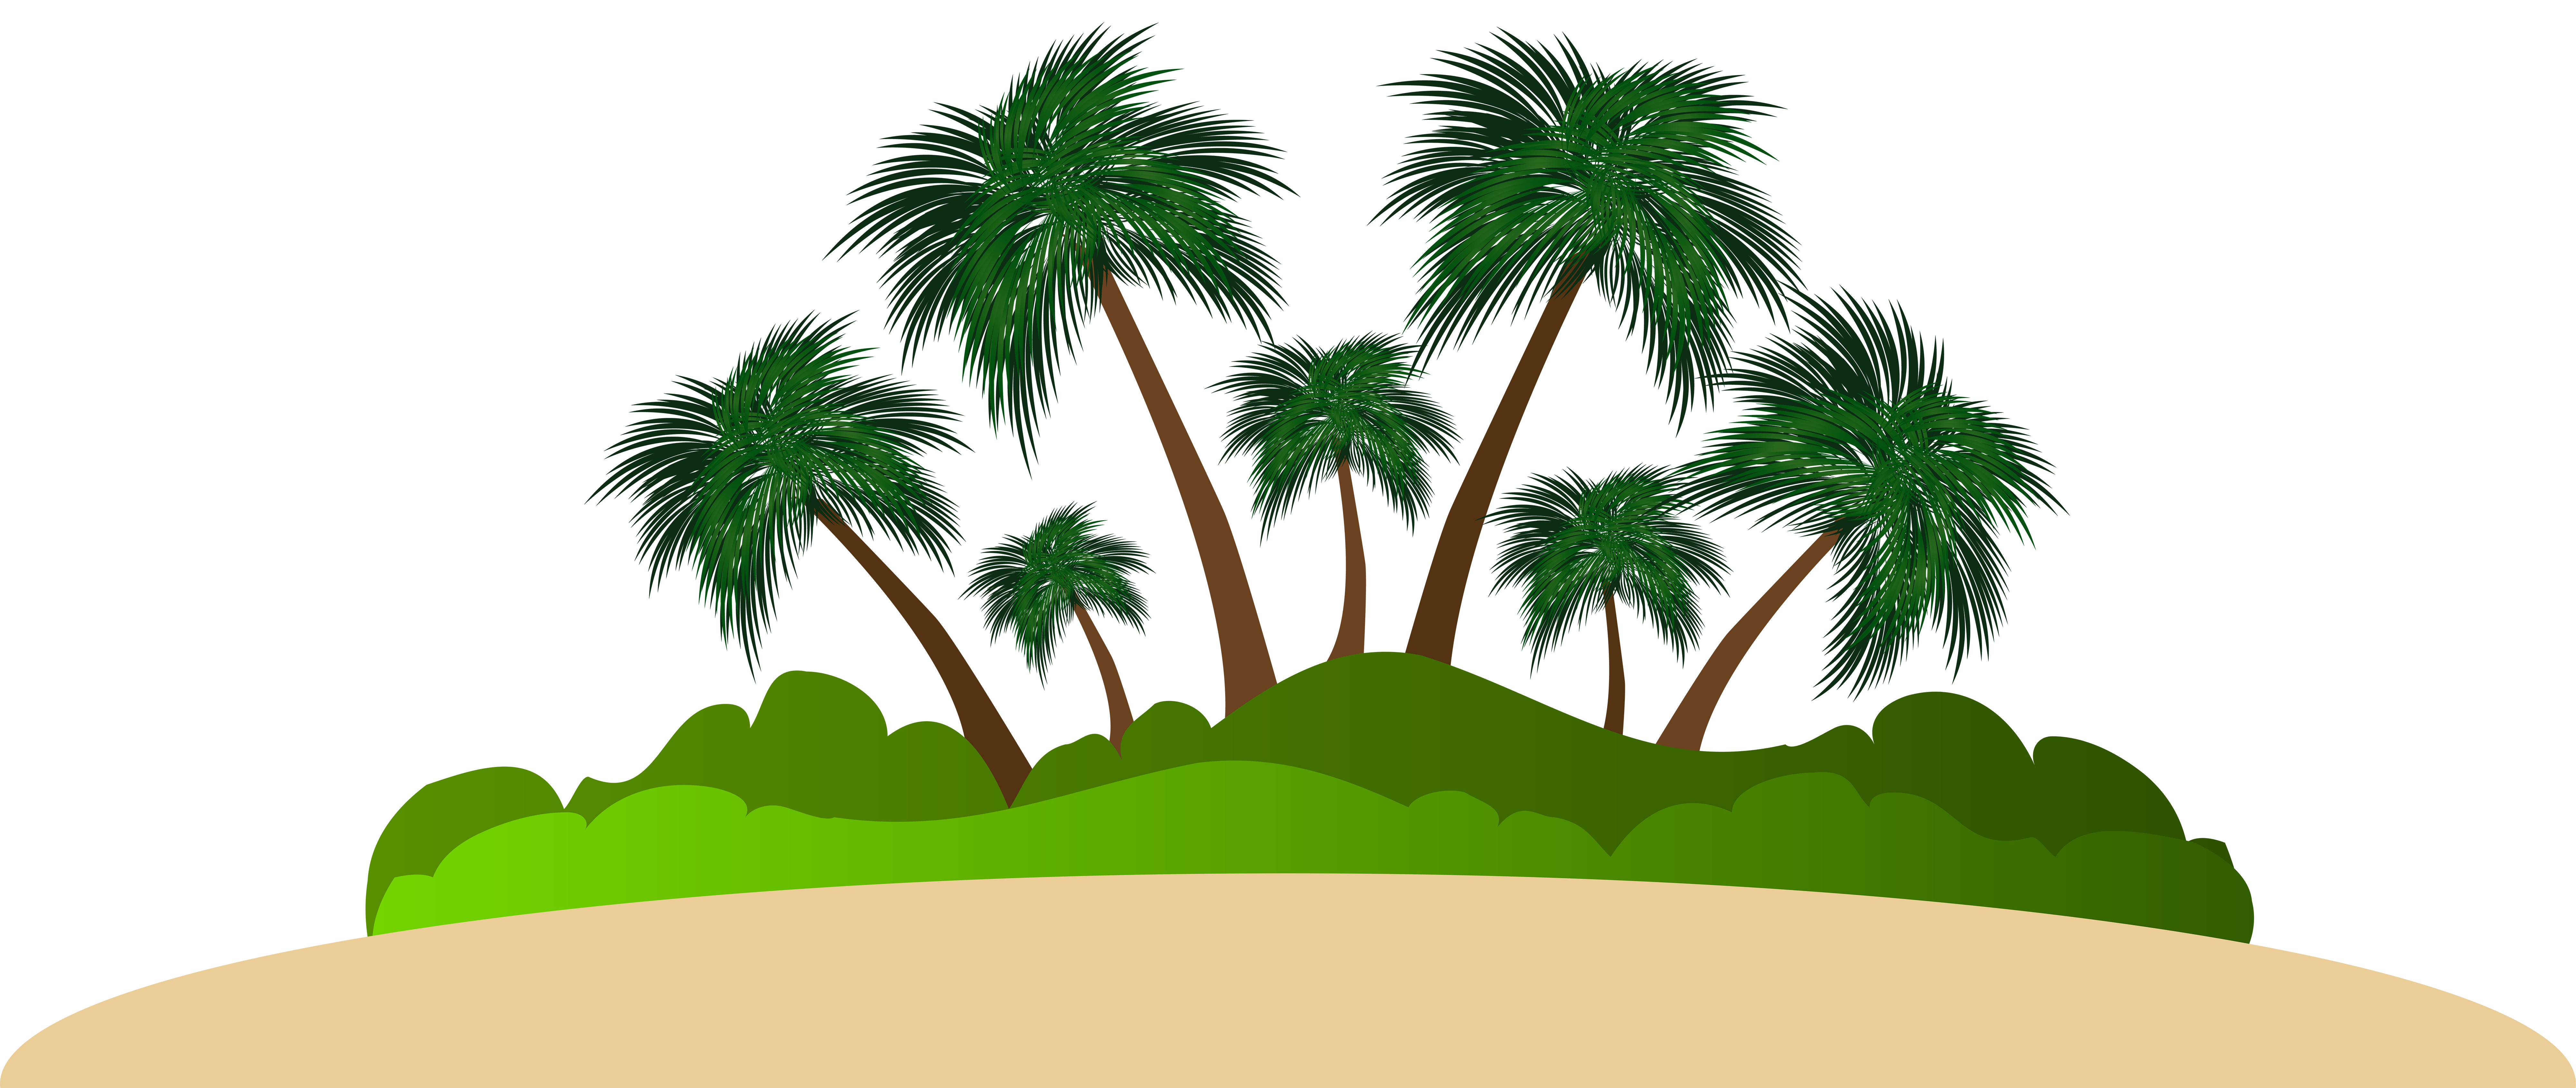 Island clipart #3, Download drawings